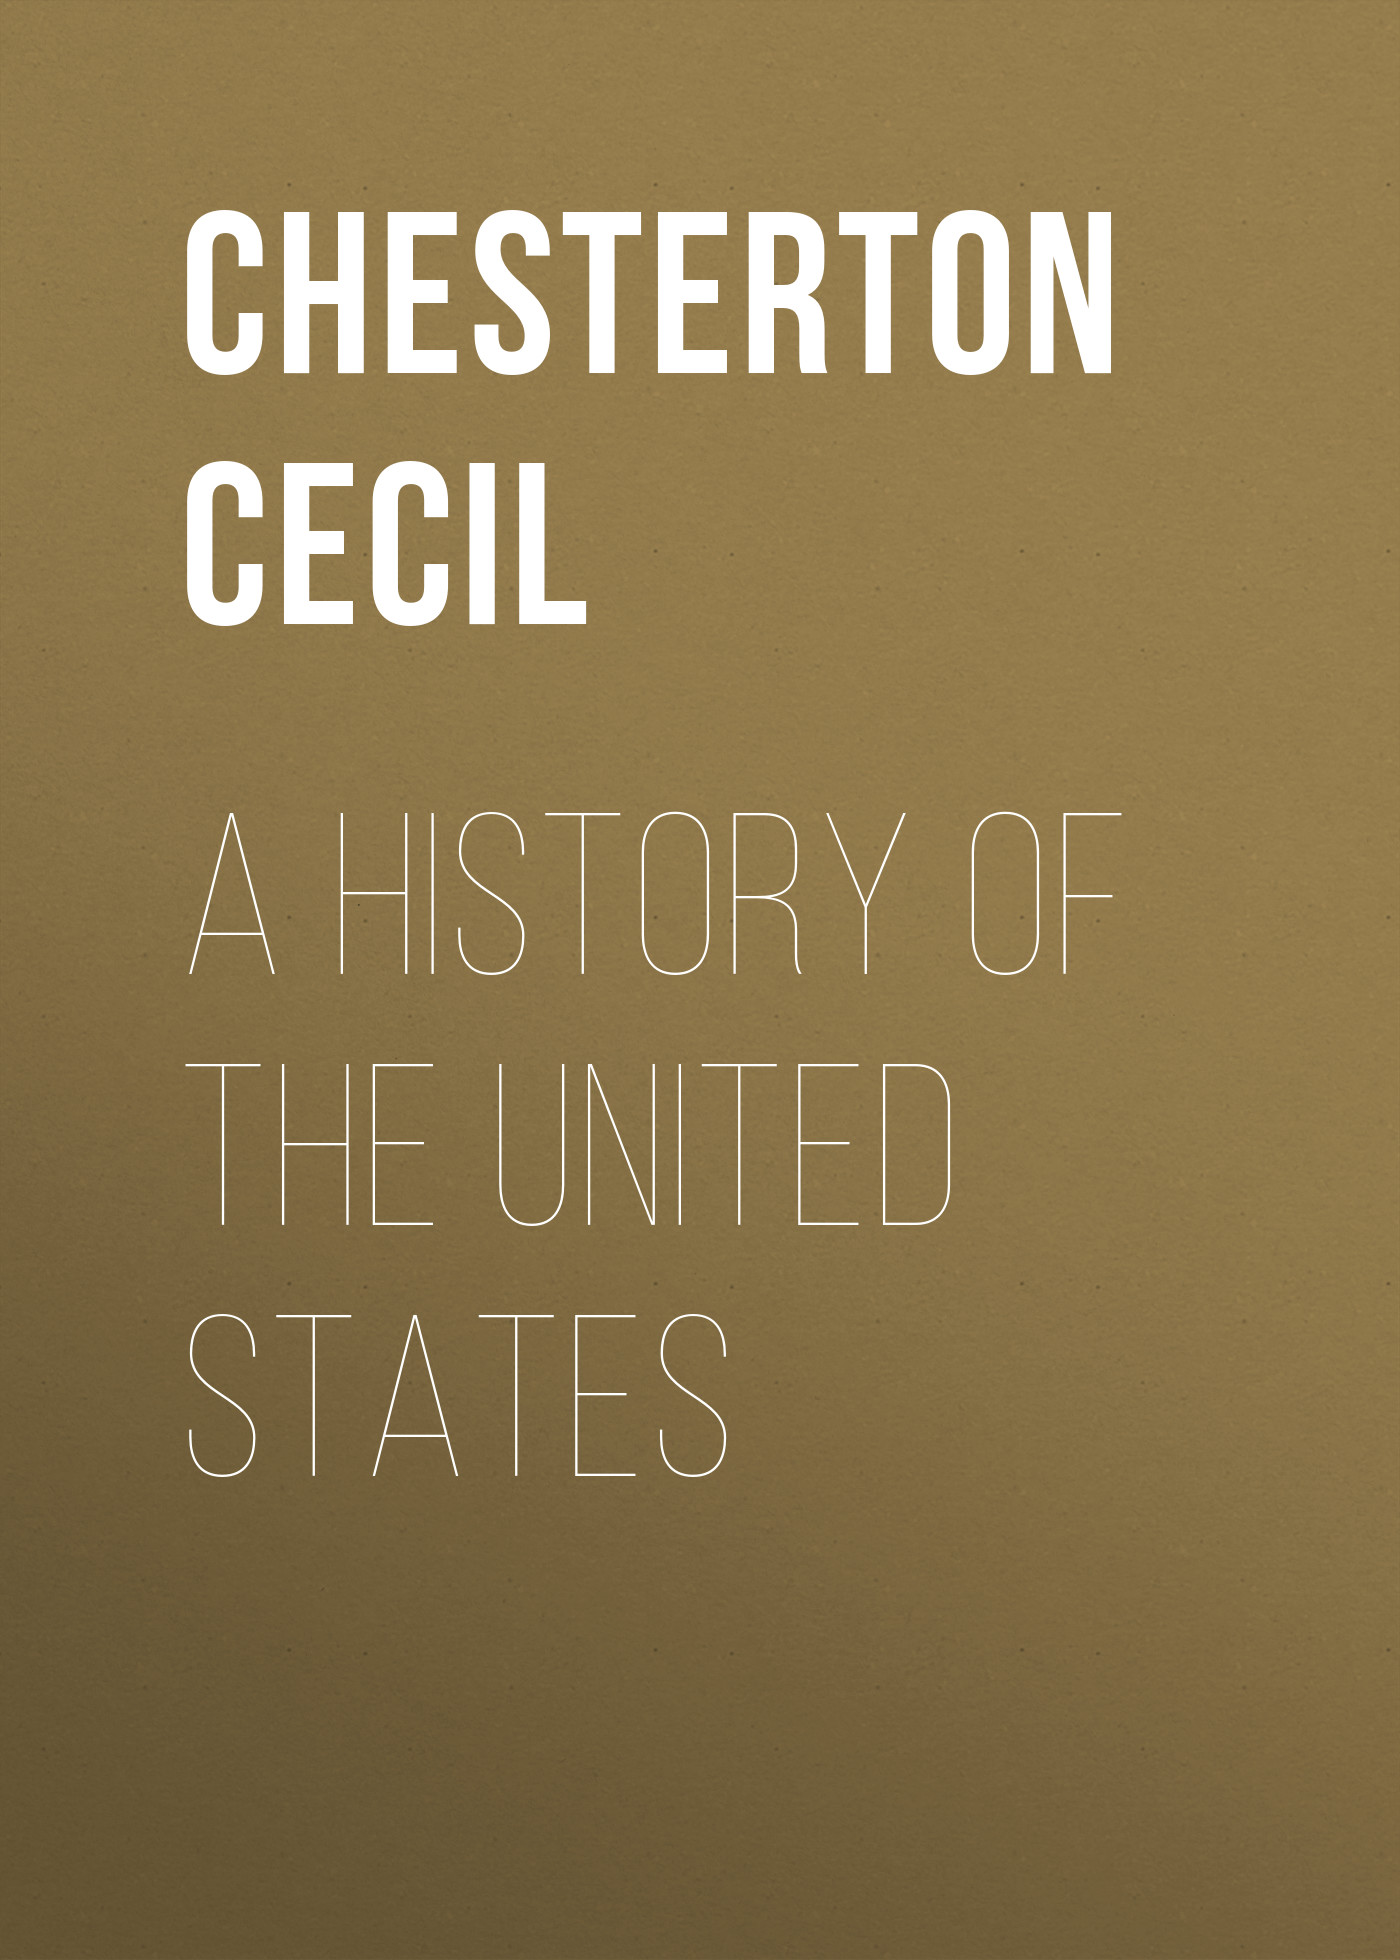 Chesterton Cecil A History of the United States шкаф для ванной the united states housing